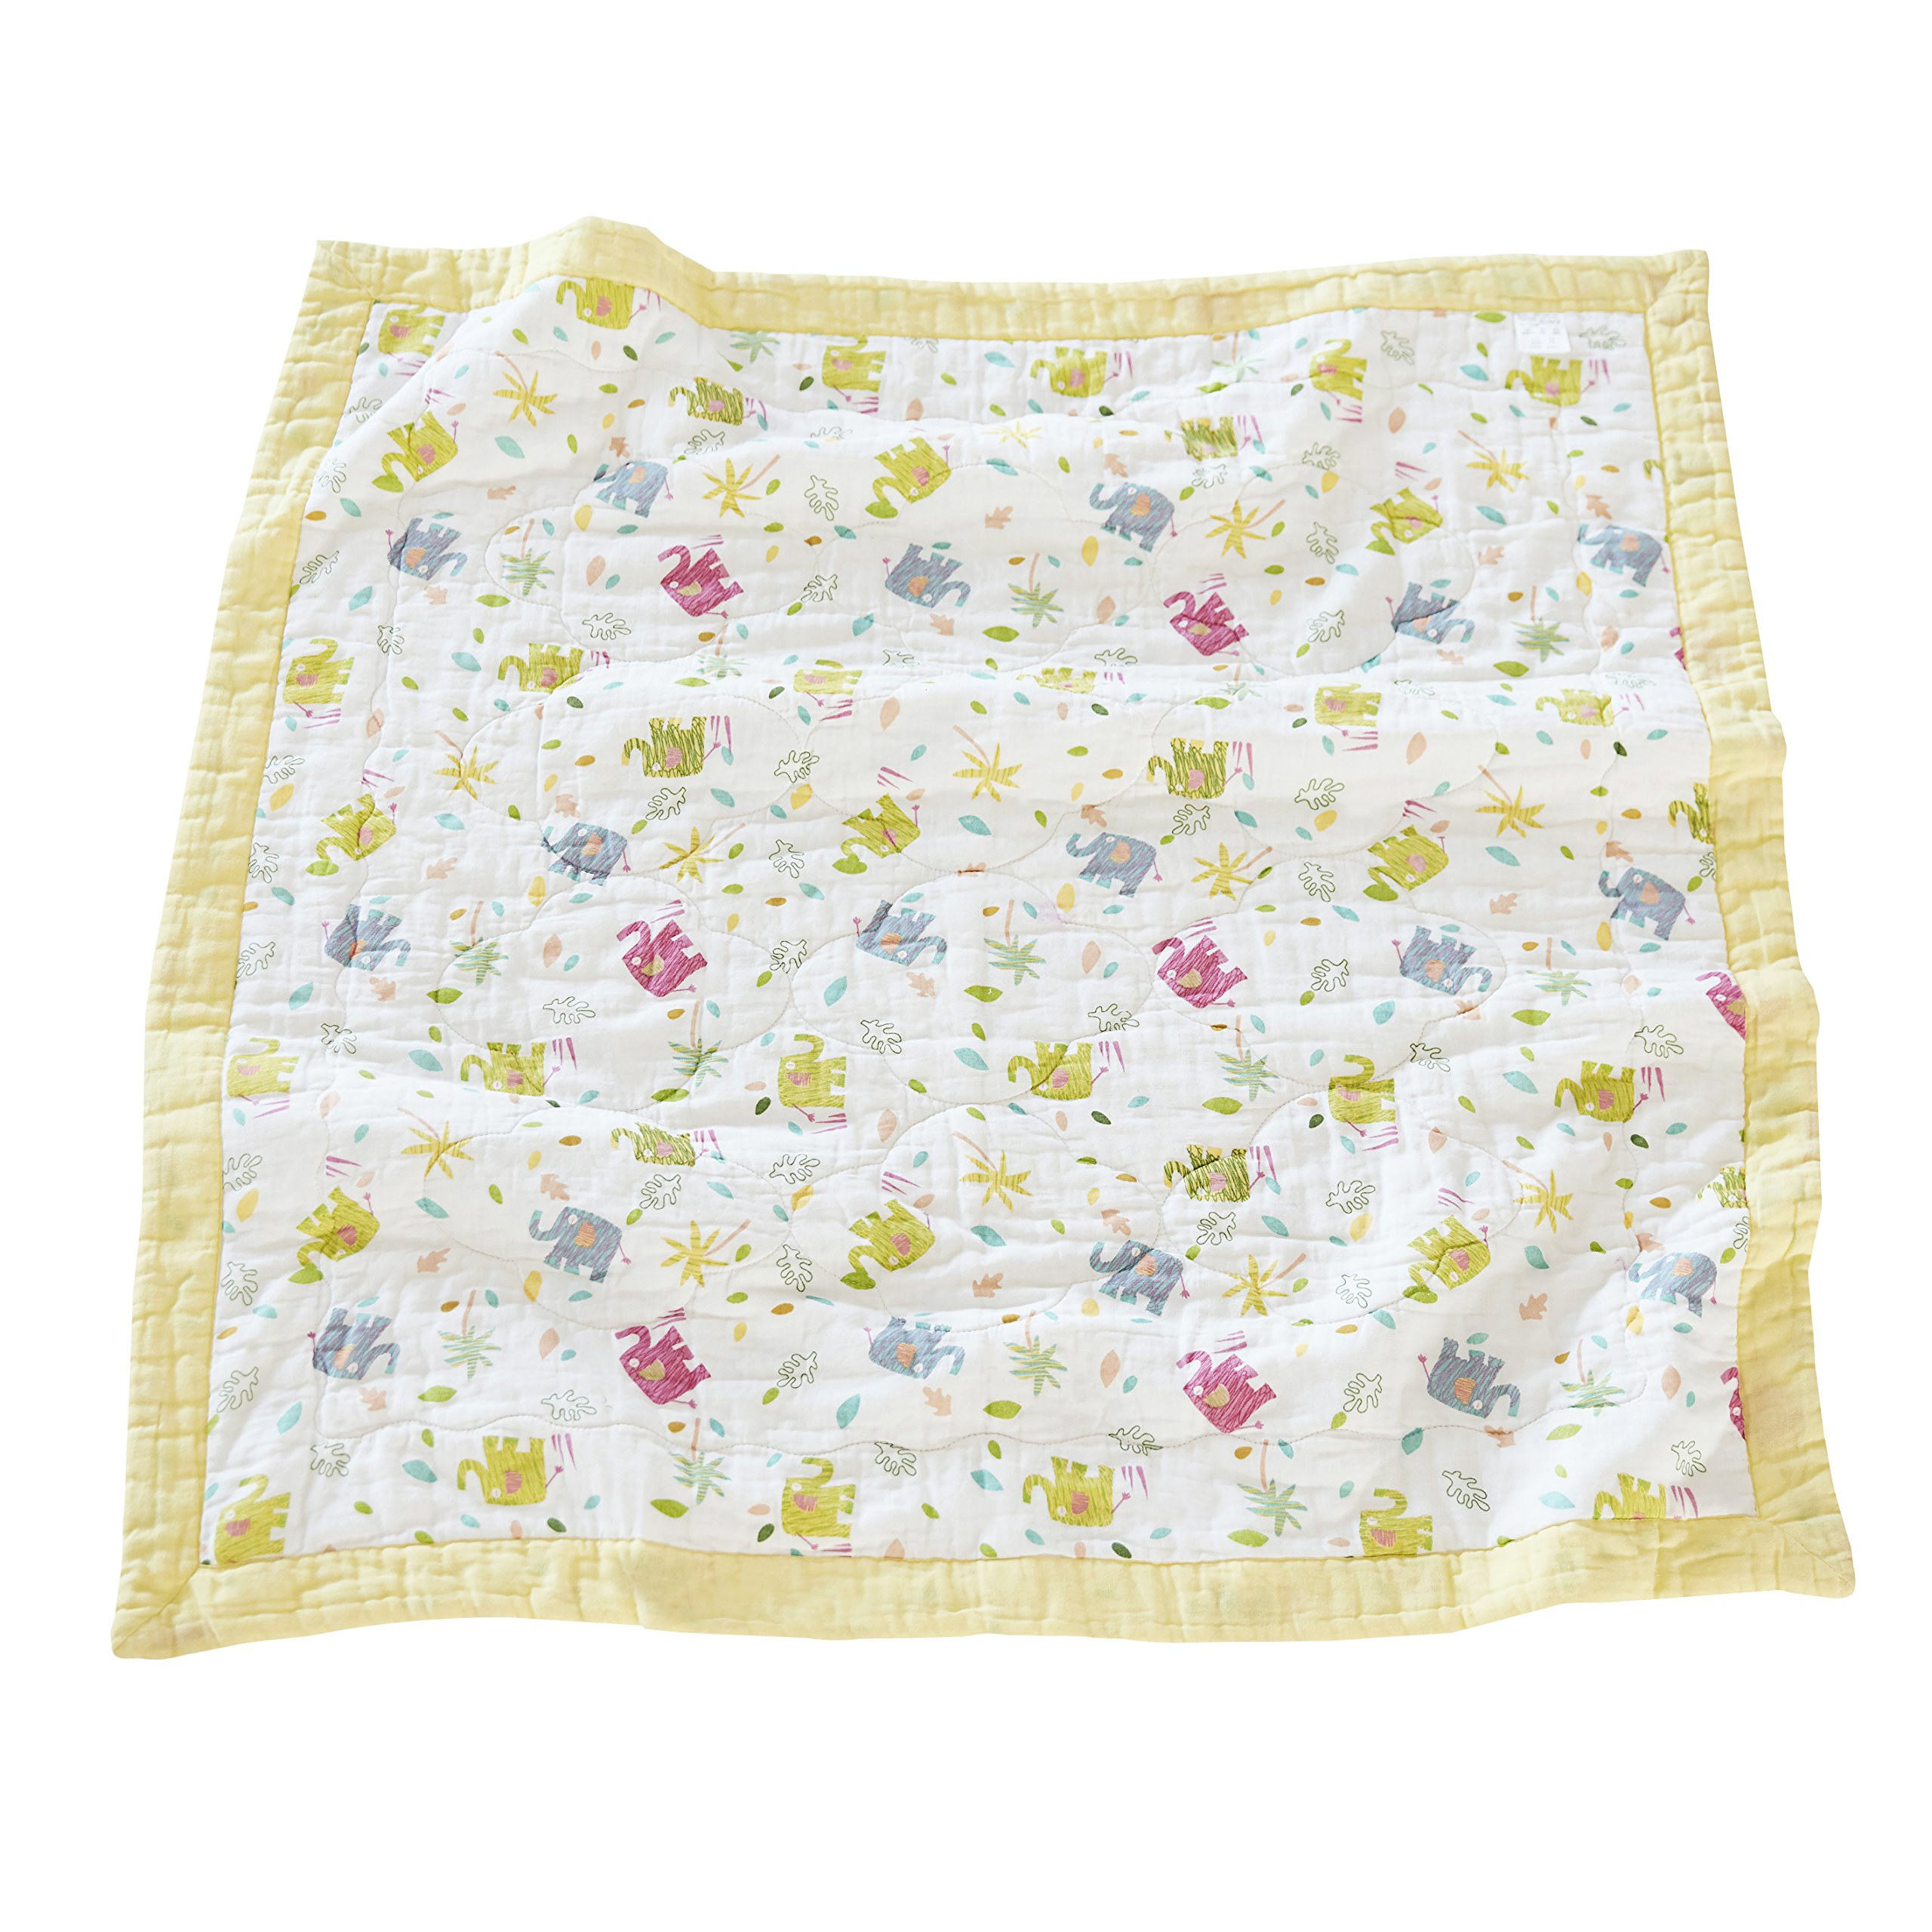 J-pinno Elephant Baby Nursery Muslin Cotton Bed Quilt Blanket Crib Coverlet 43.5'' X 43.5'' (Yellow)